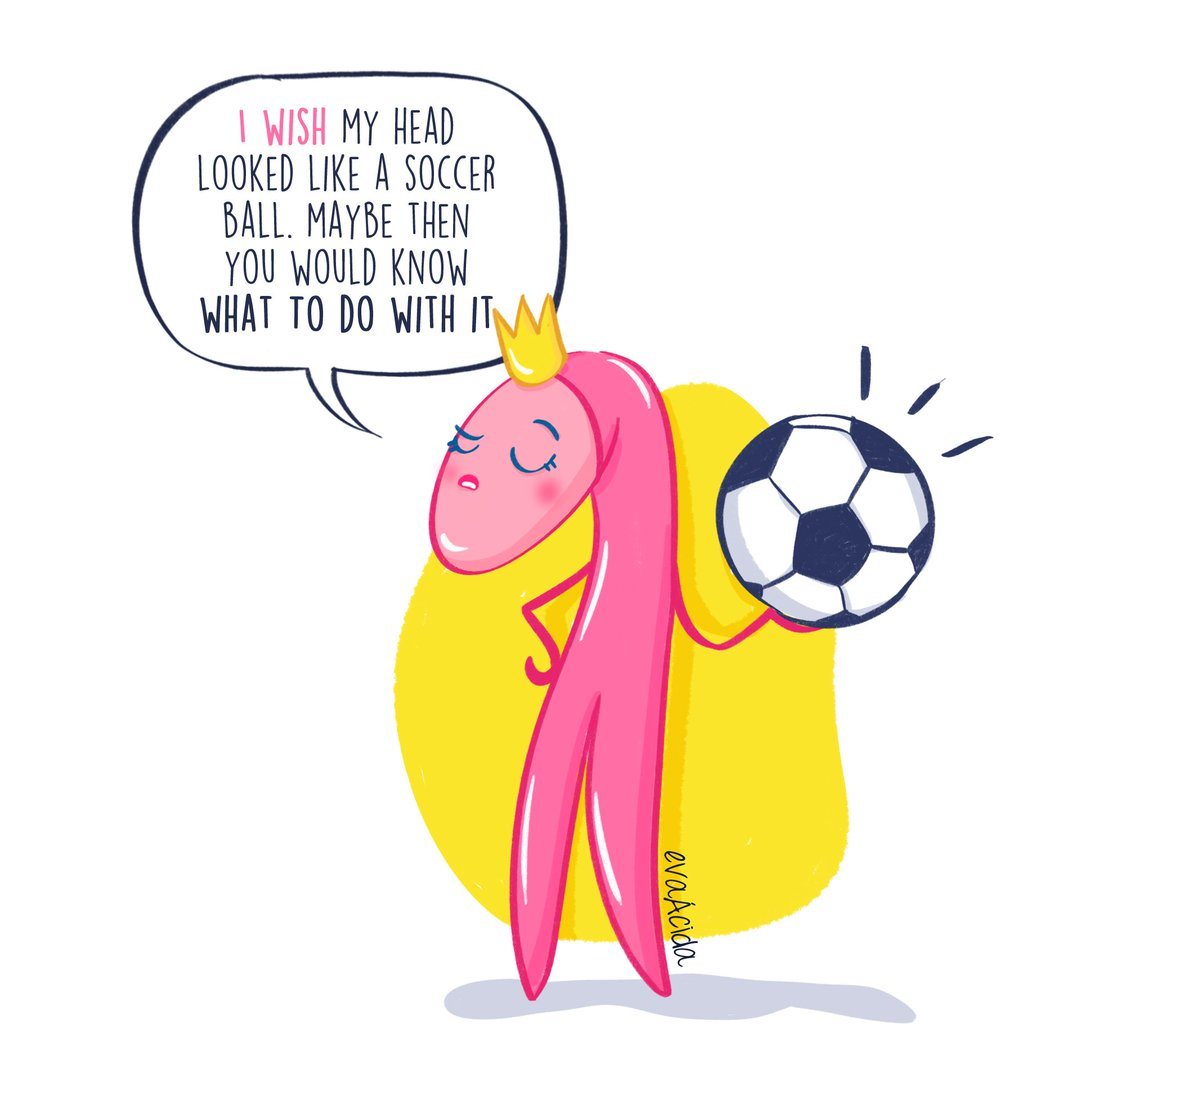 just reminded me about that other important thing...  #CharlieHebdo #CoupeDuMondeFeminine2019 #FIFAWomensWorldCup<br>http://pic.twitter.com/mWiOdioRrt